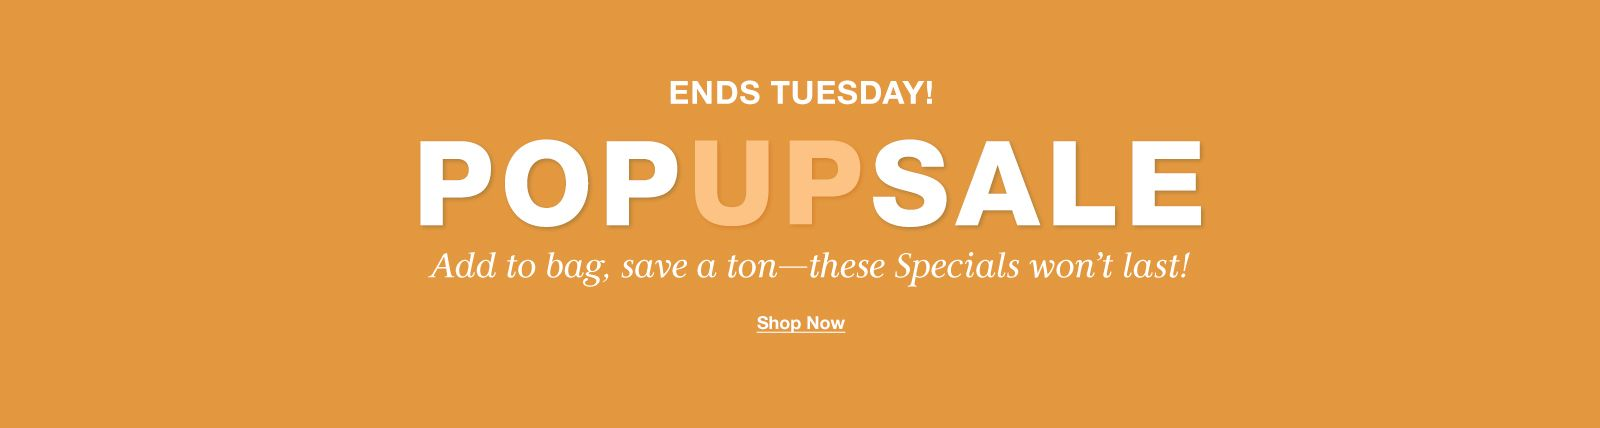 Ends Tuesday! Popup Sale, Add to bag, save a ton-these Specials won't last! Shop Now